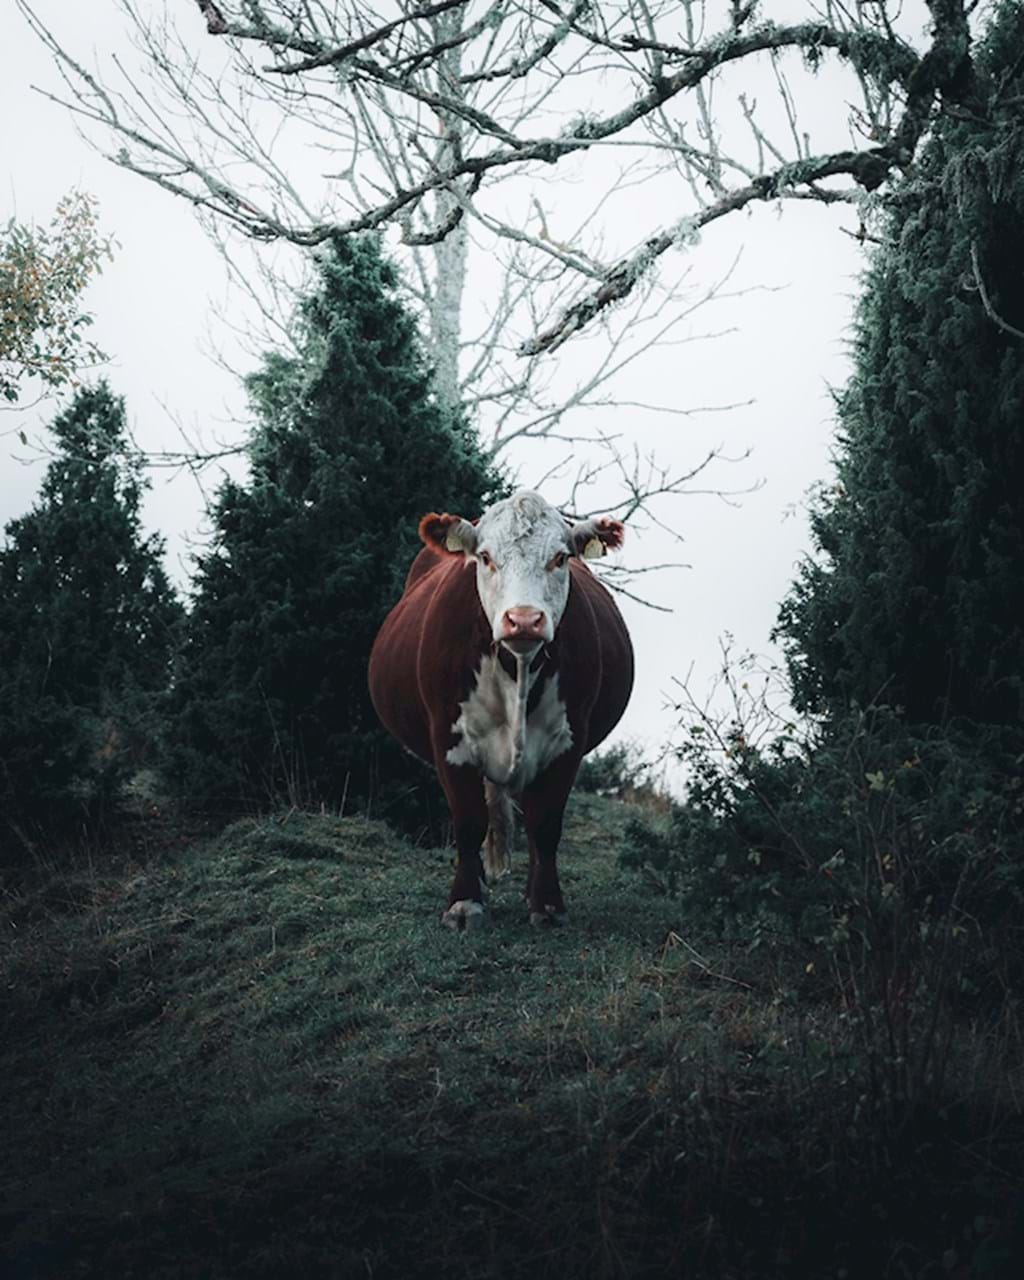 Poster: Once I met a cow.. - Digital